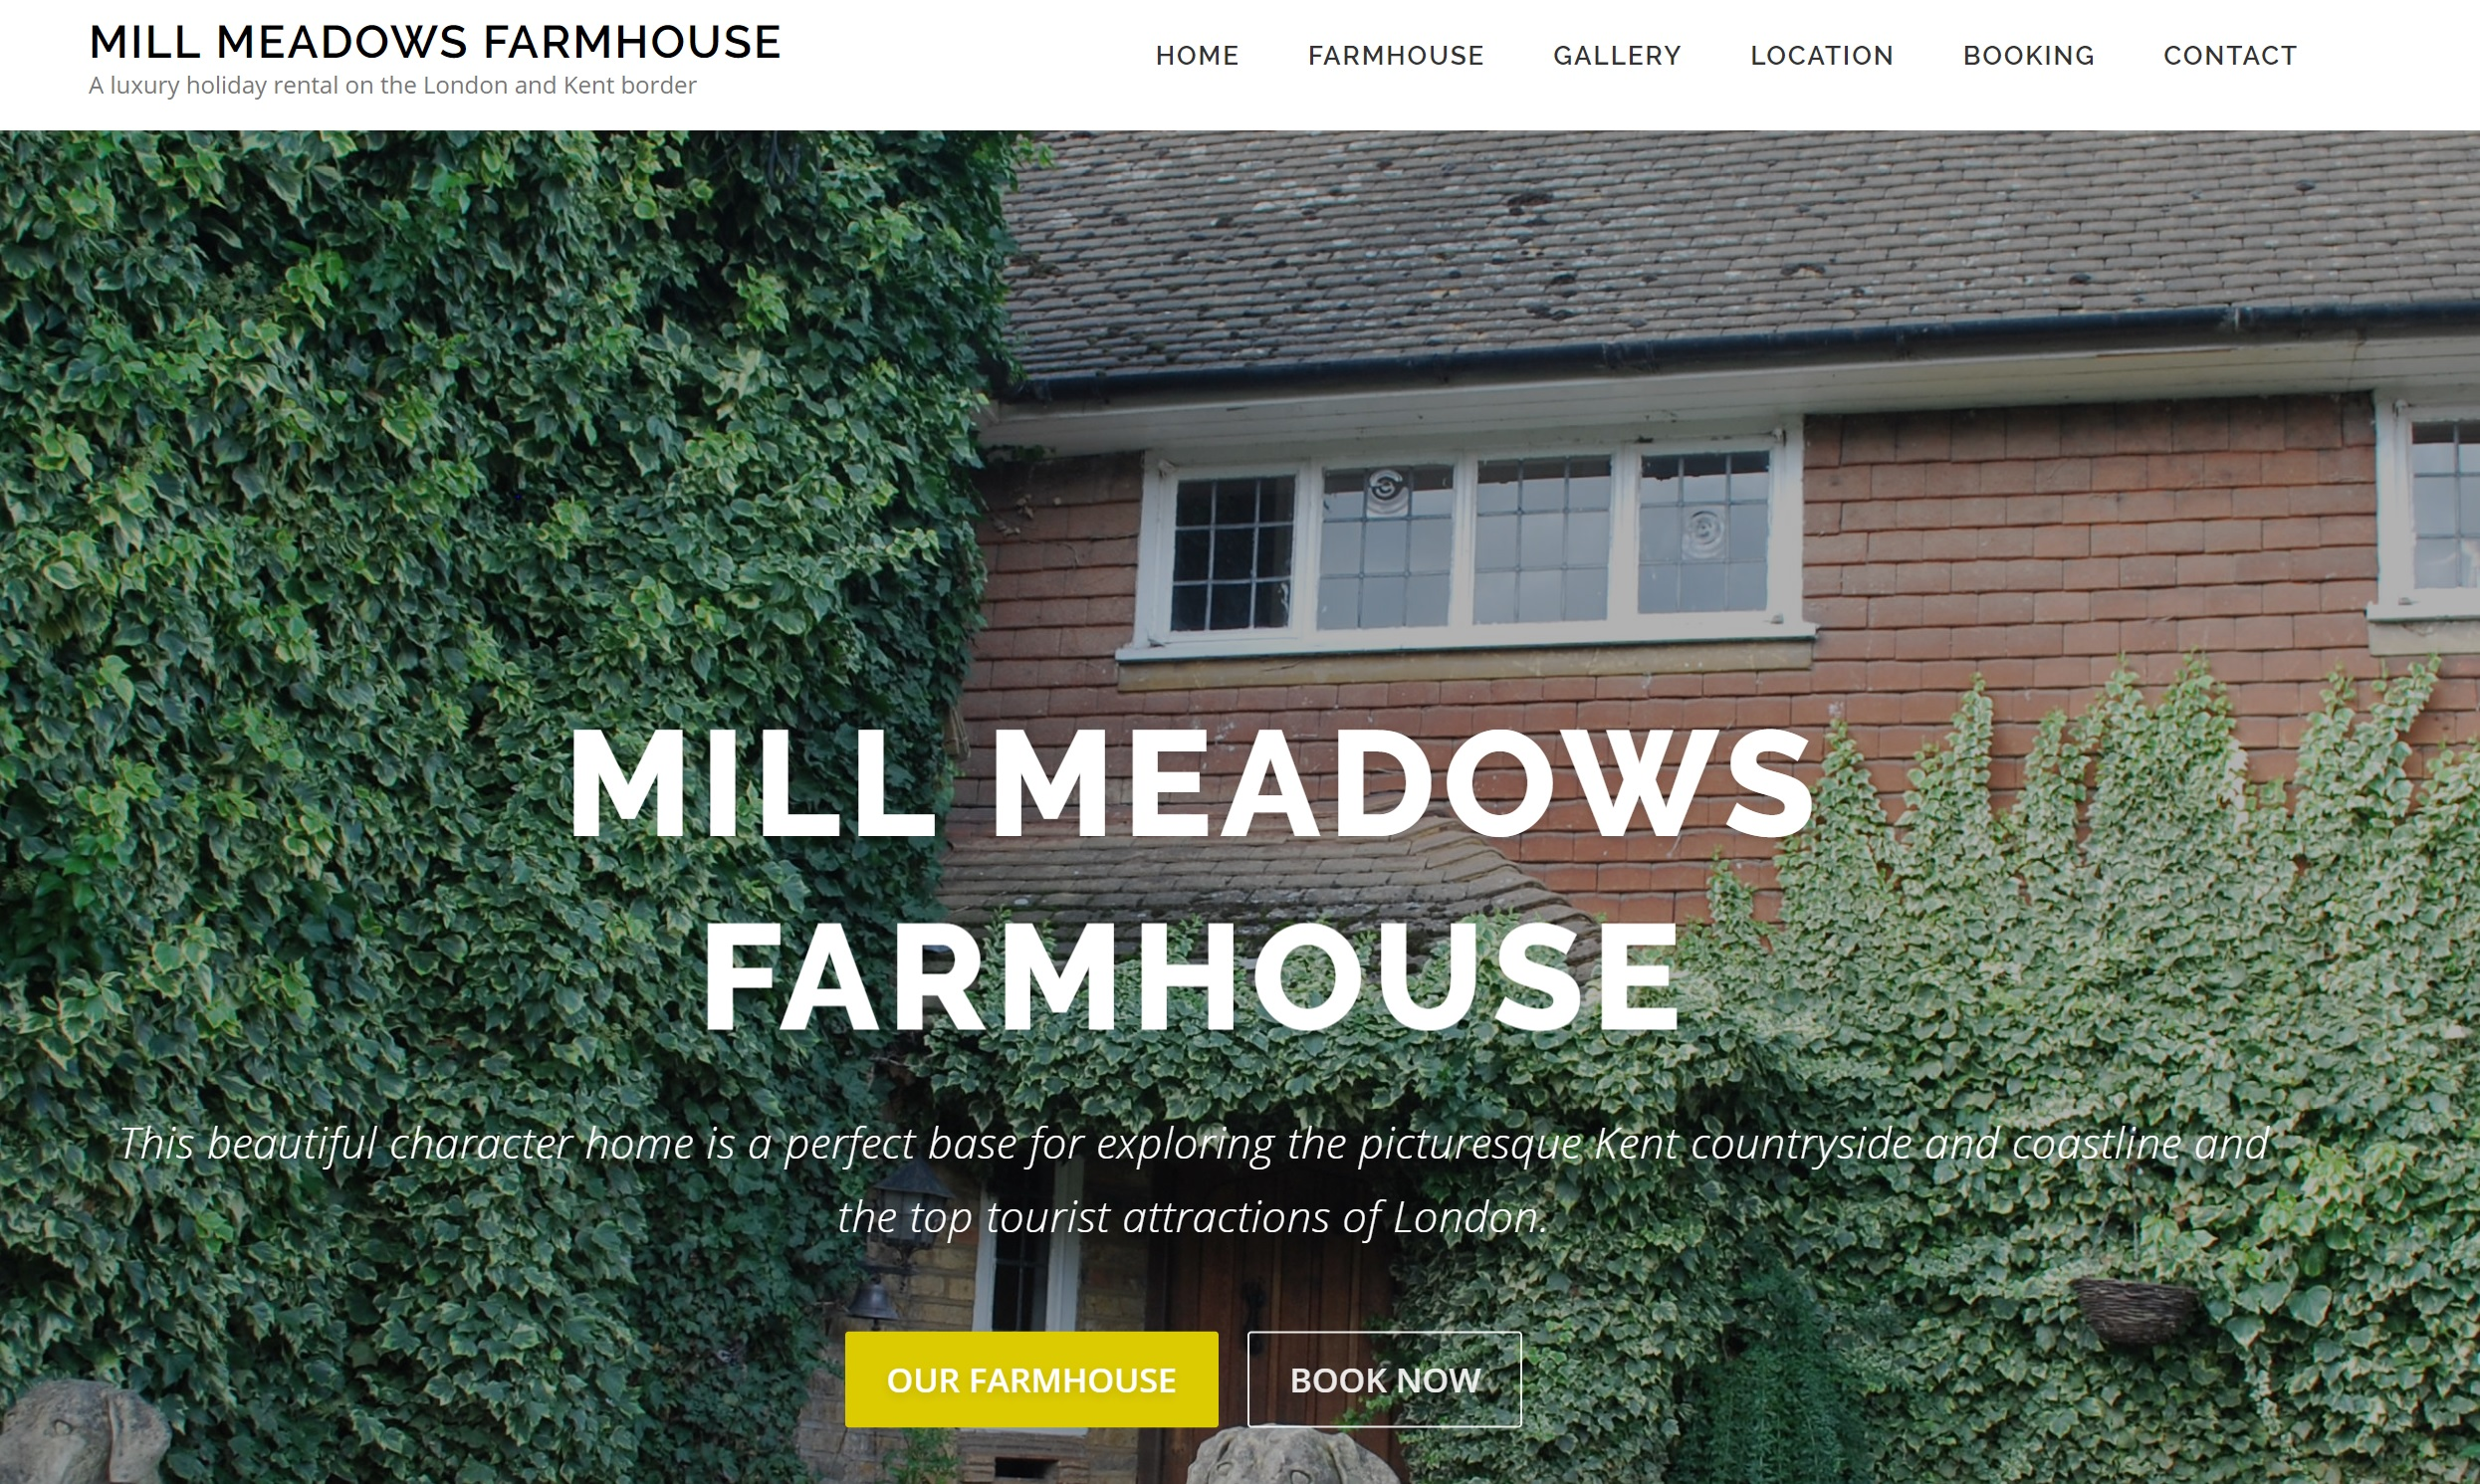 Mill Meadows Farmhouse